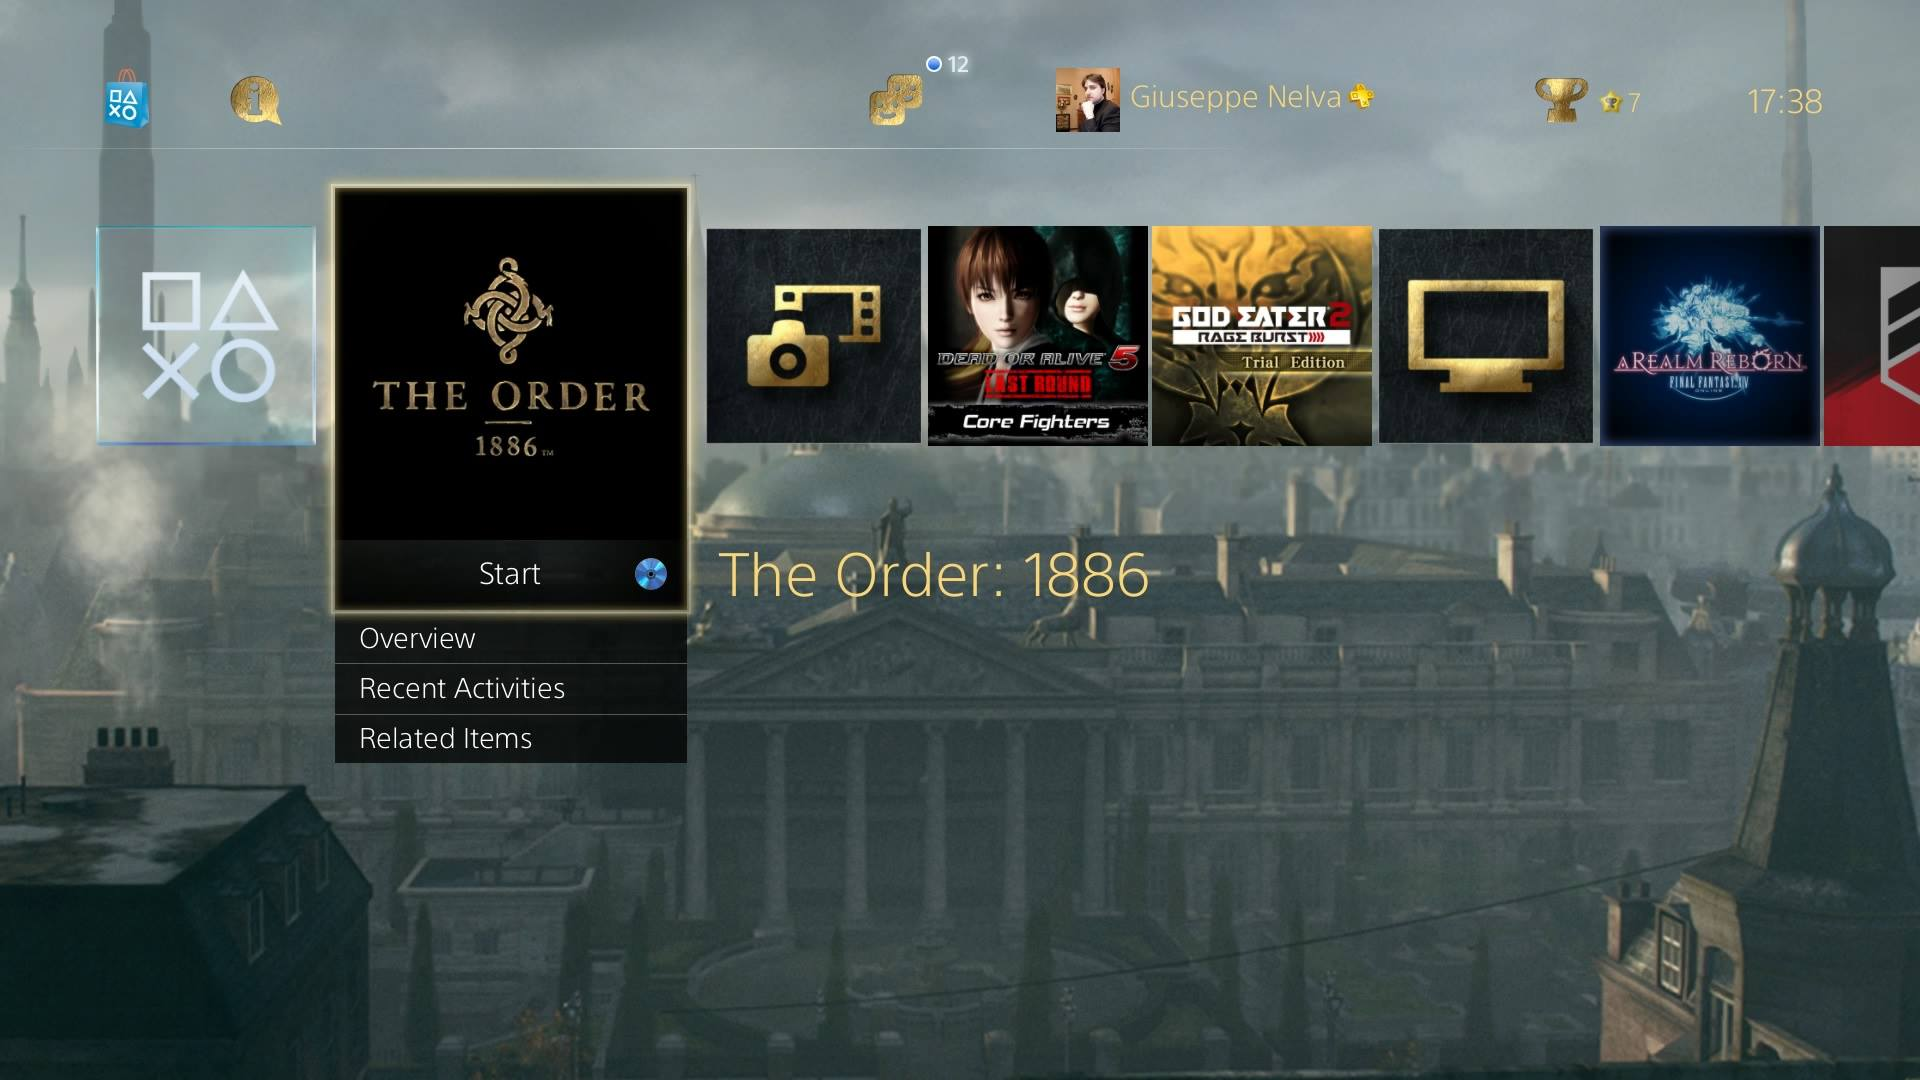 The Order 1886 Free PS4 Dynamic Theme From Promo Website Finally Available Screenshots Inside